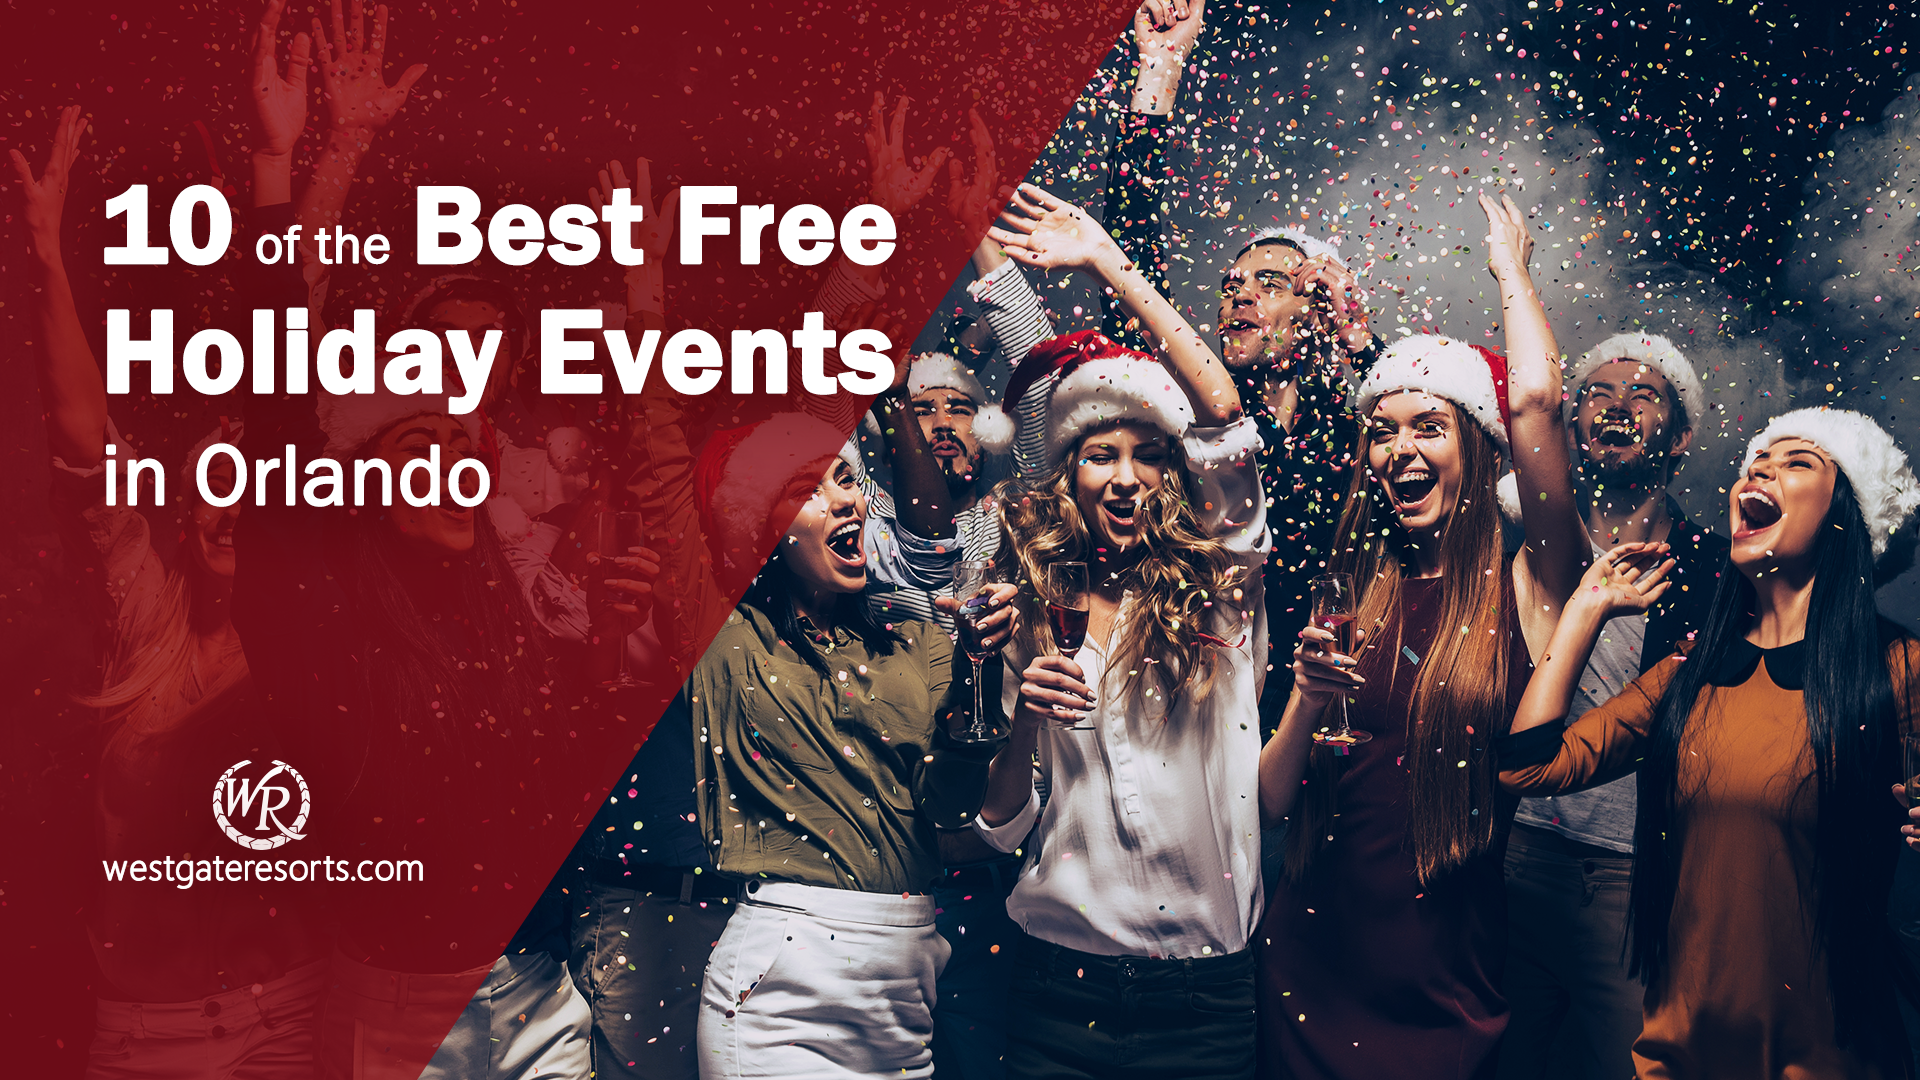 10 of the Best Free Christmas Events in Orlando | Free Things to Do in Orlando Florida for Families